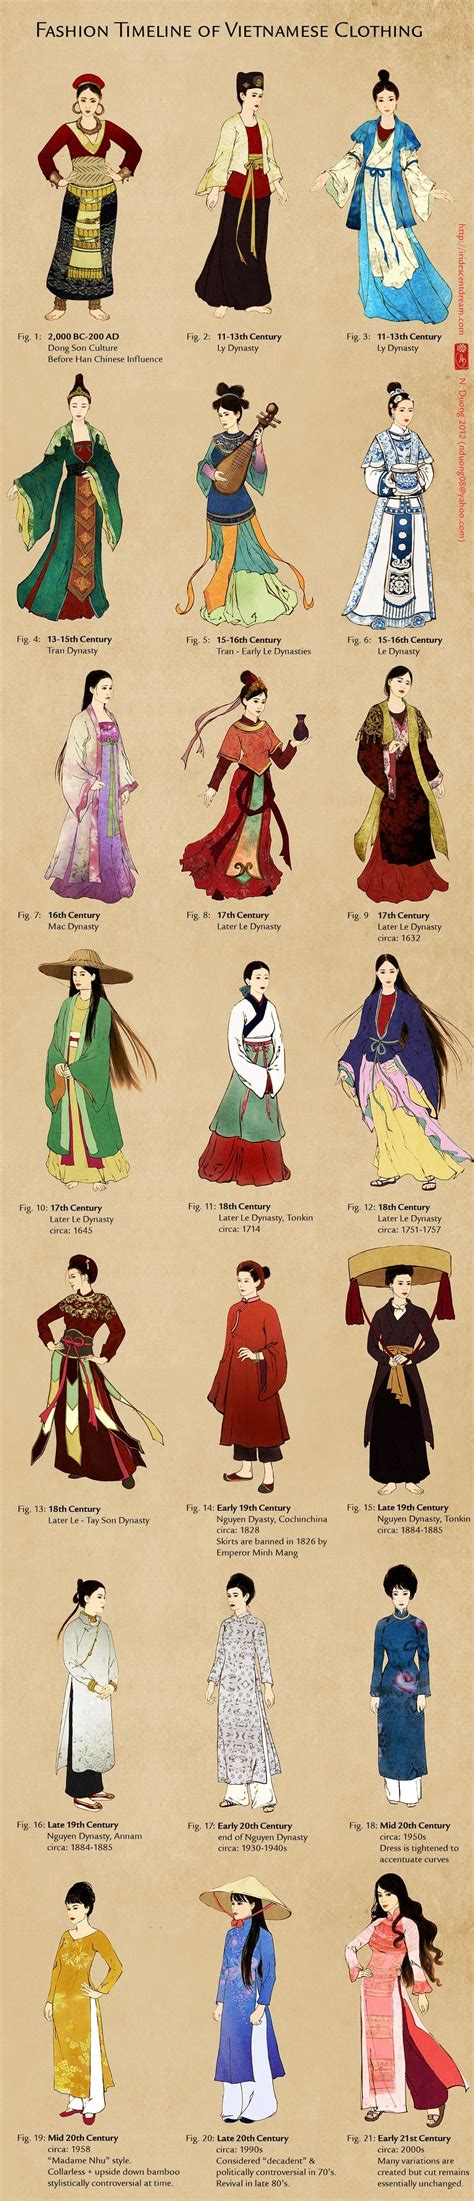 chinese traditional fashion timeline fashion timeline of vietnamese clothing reference